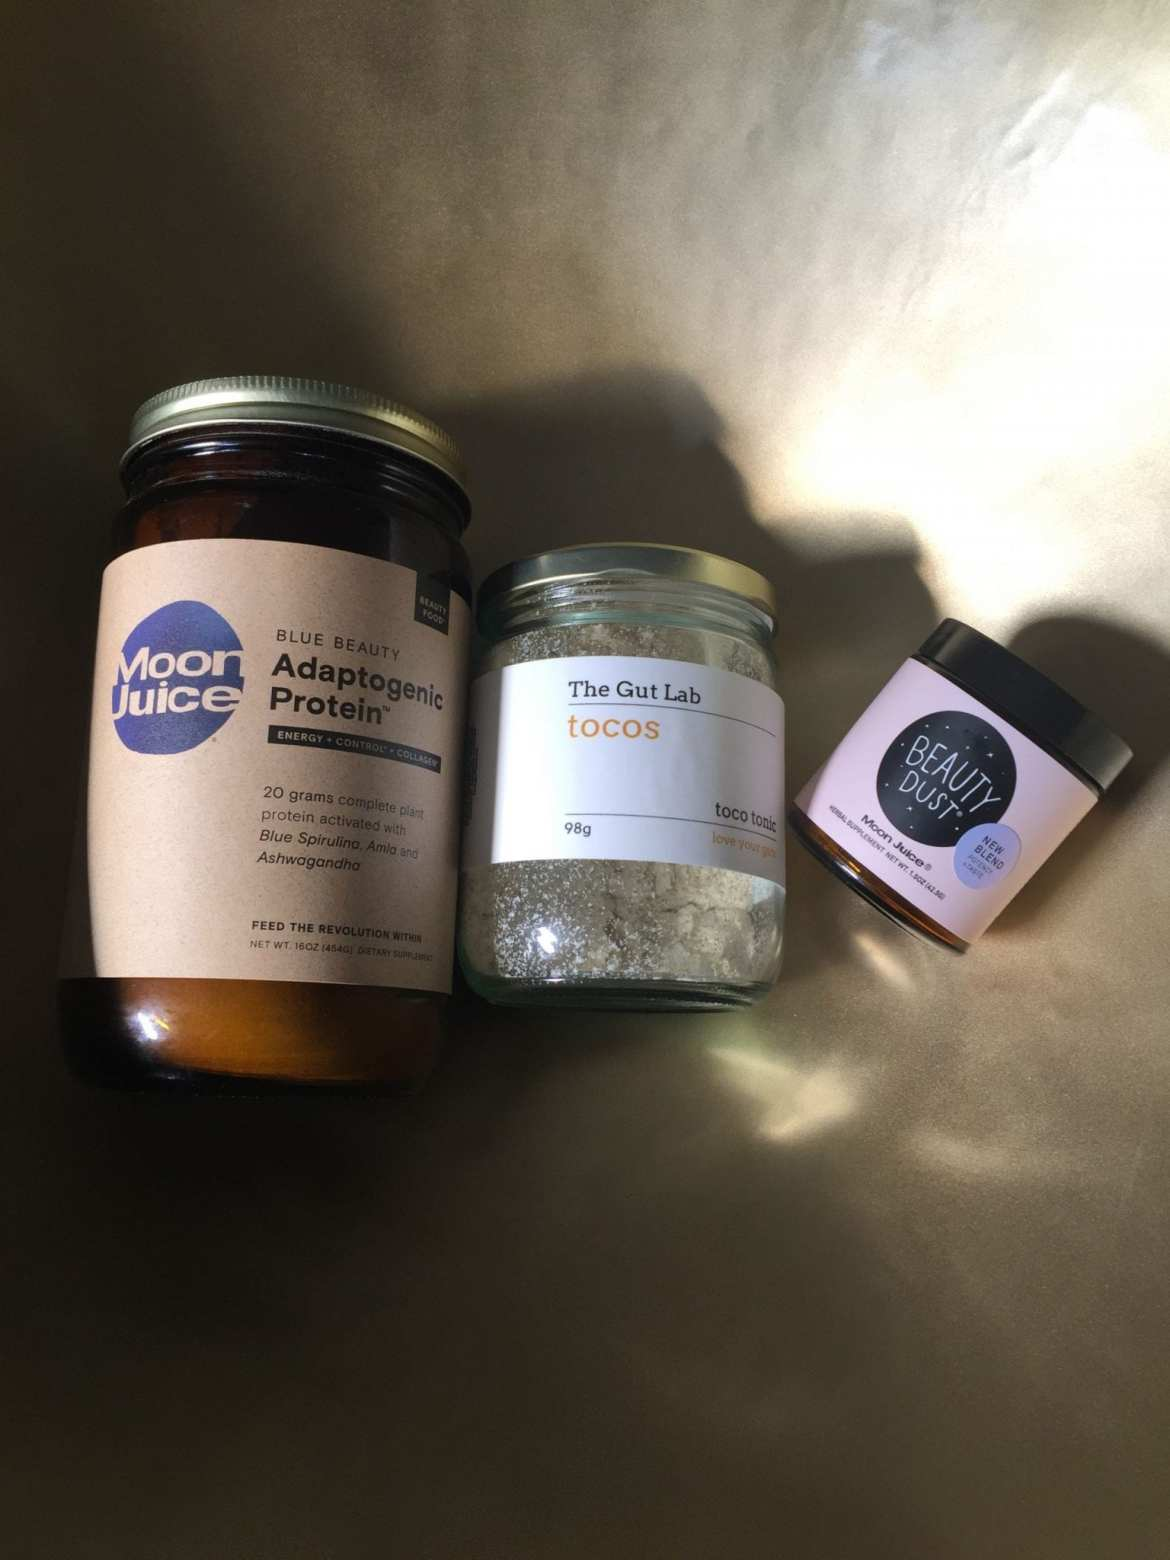 Moon Juice Beauty Dust, Adaptogen Protein and Tocotrienol